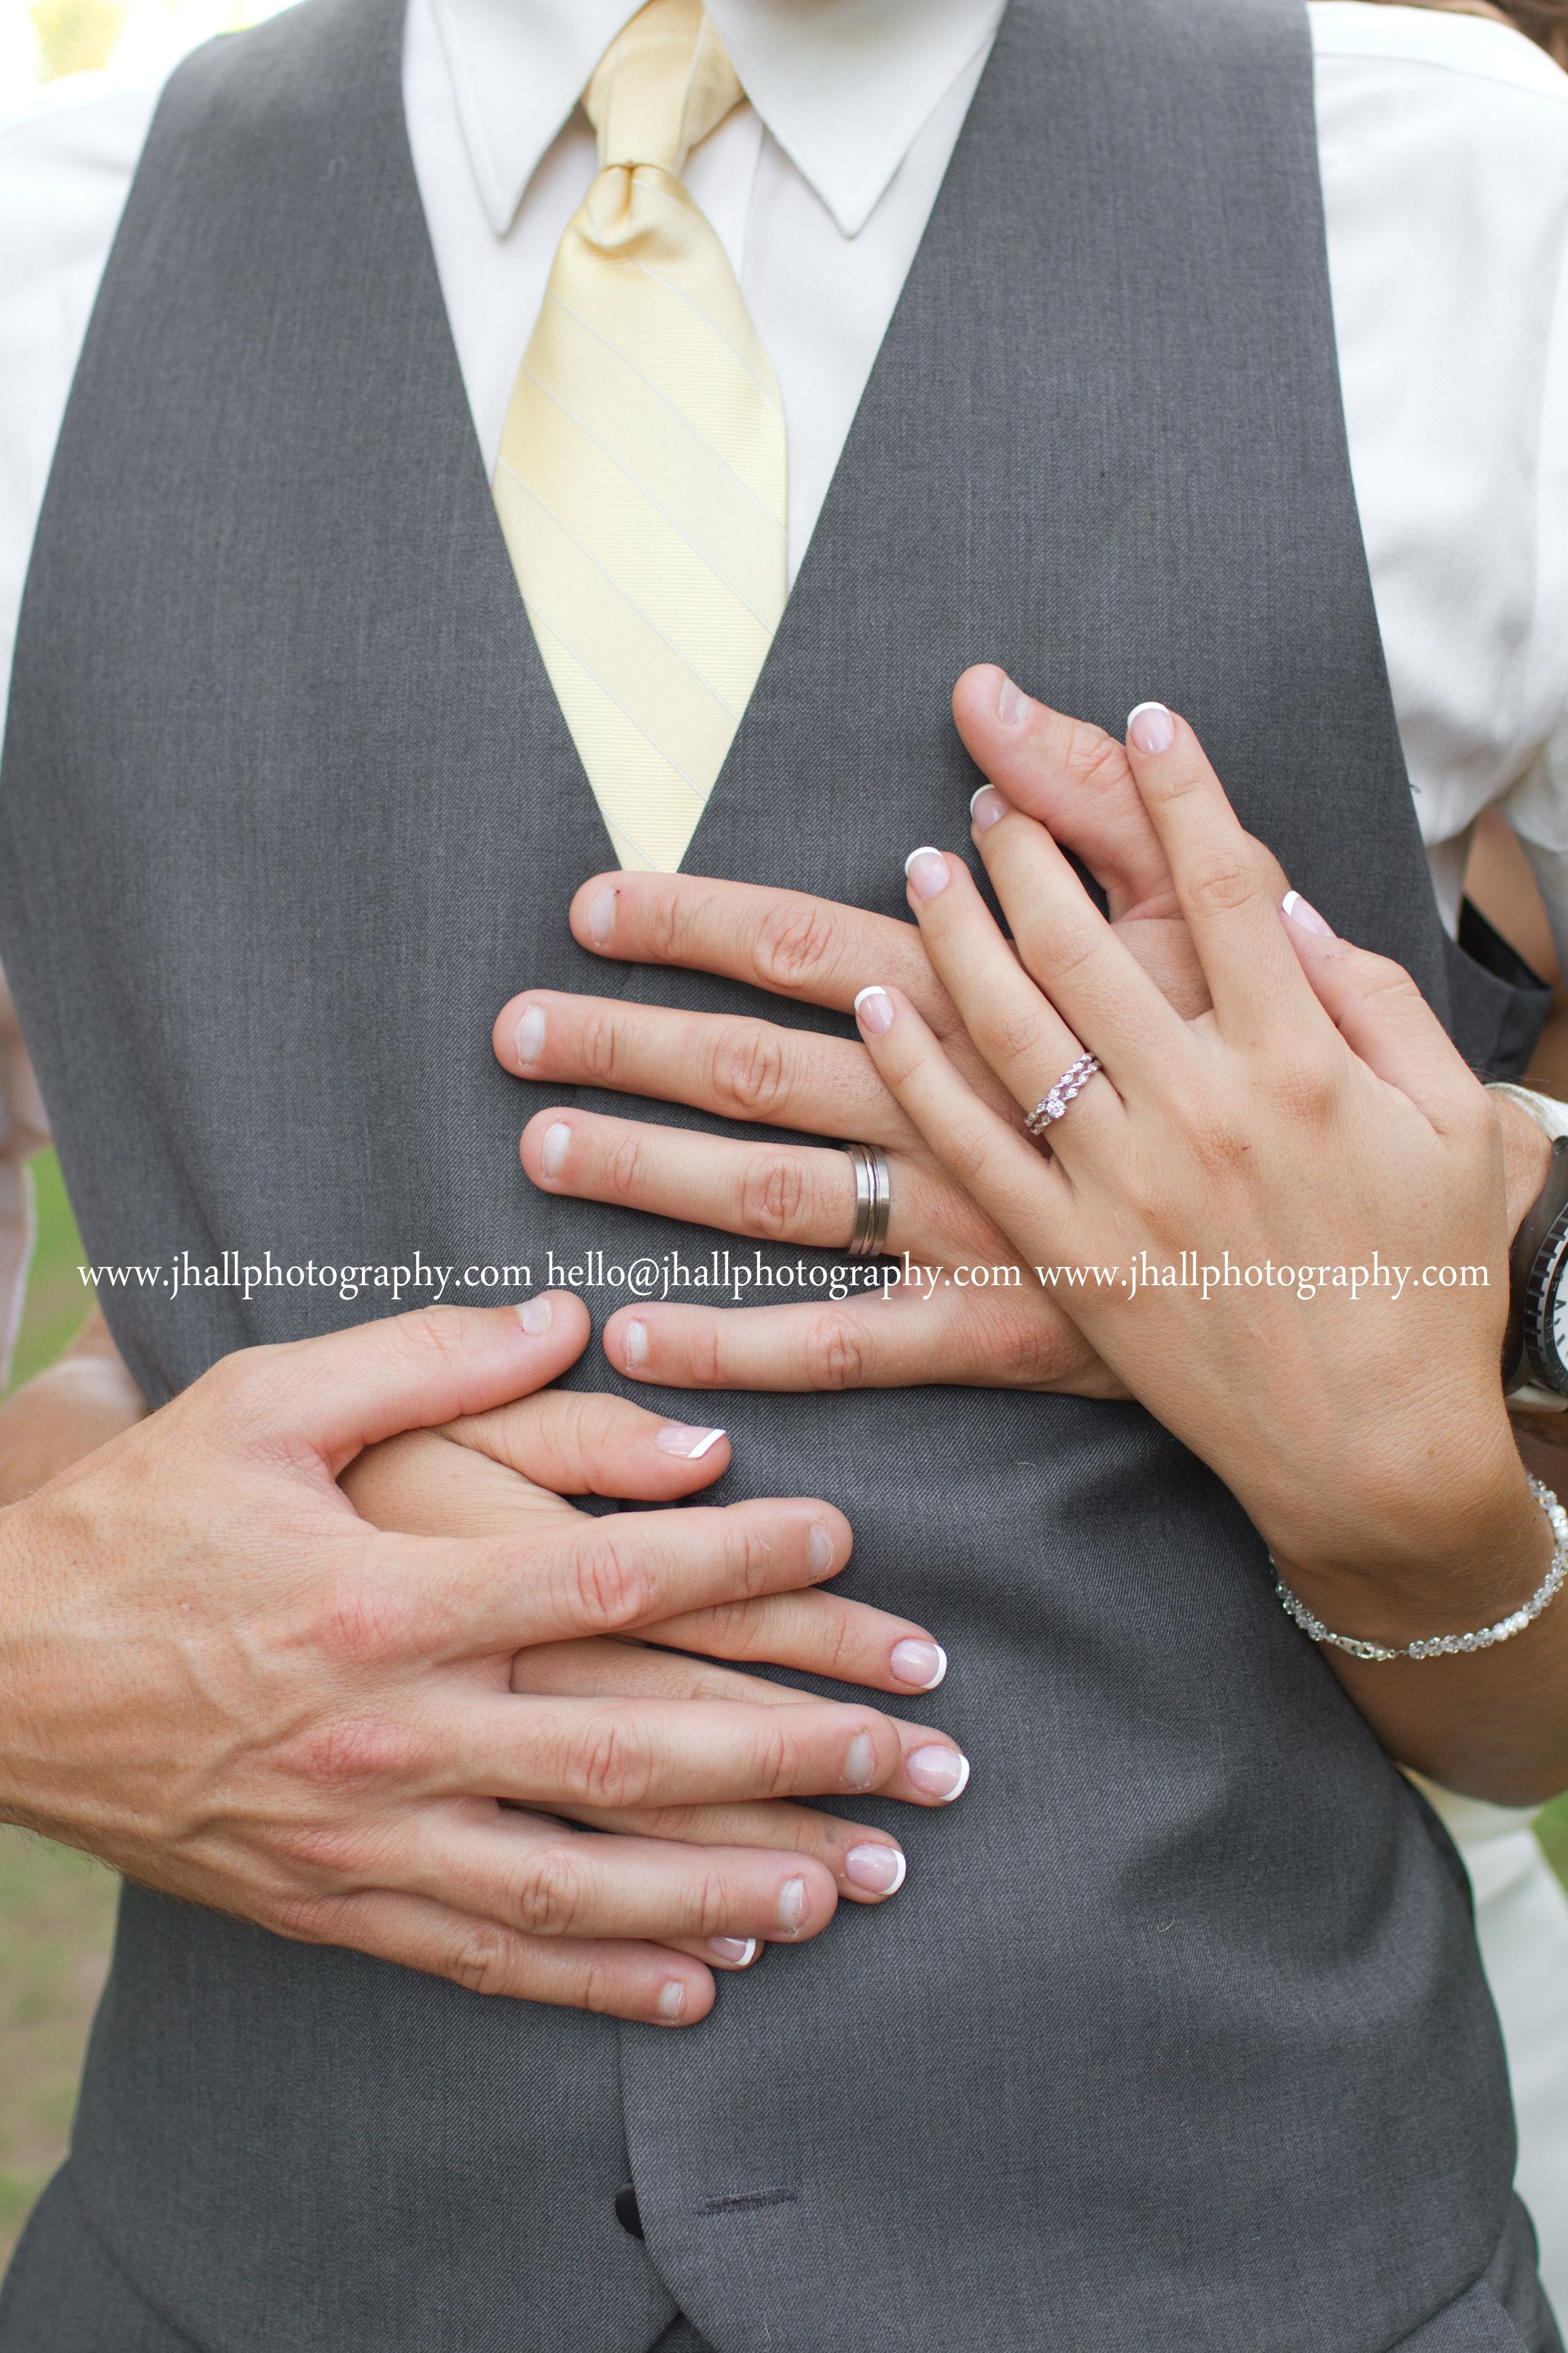 bride and groom ring shot wedding rings holding hands wedding